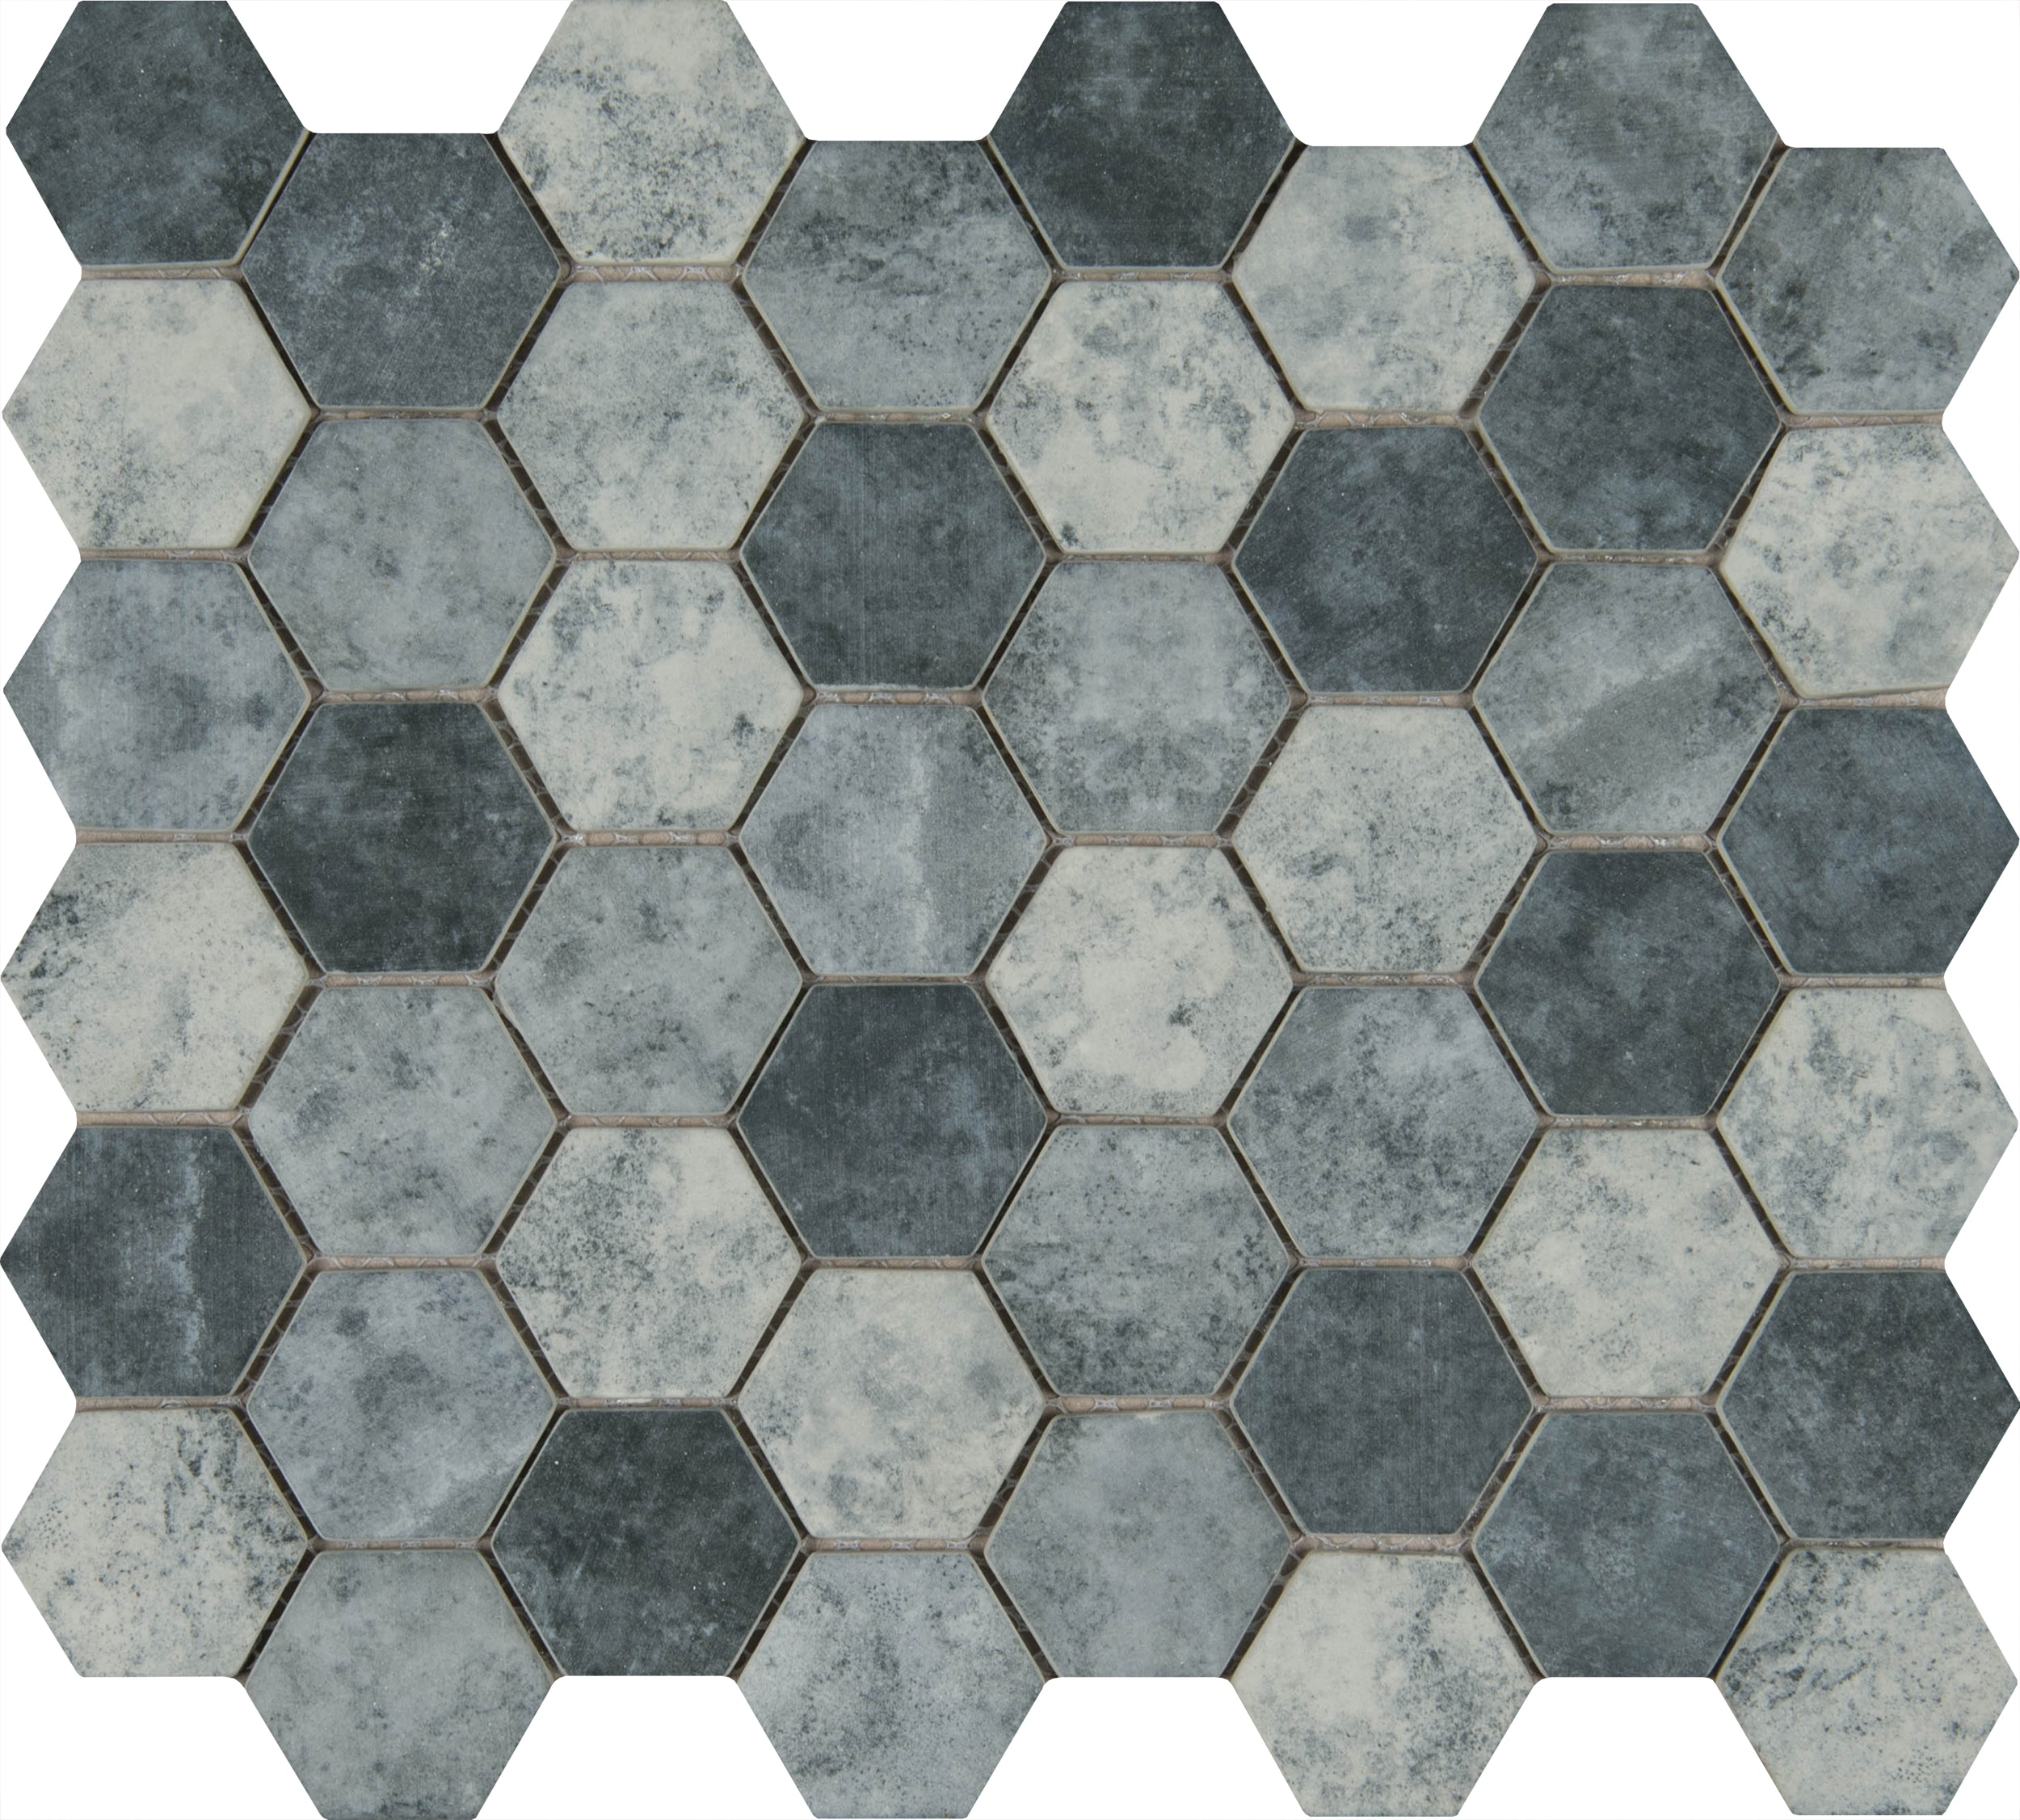 Urban Tapestry 6mm / Pattern / Smooth Glass Mosaic - Urban Tapestry 0